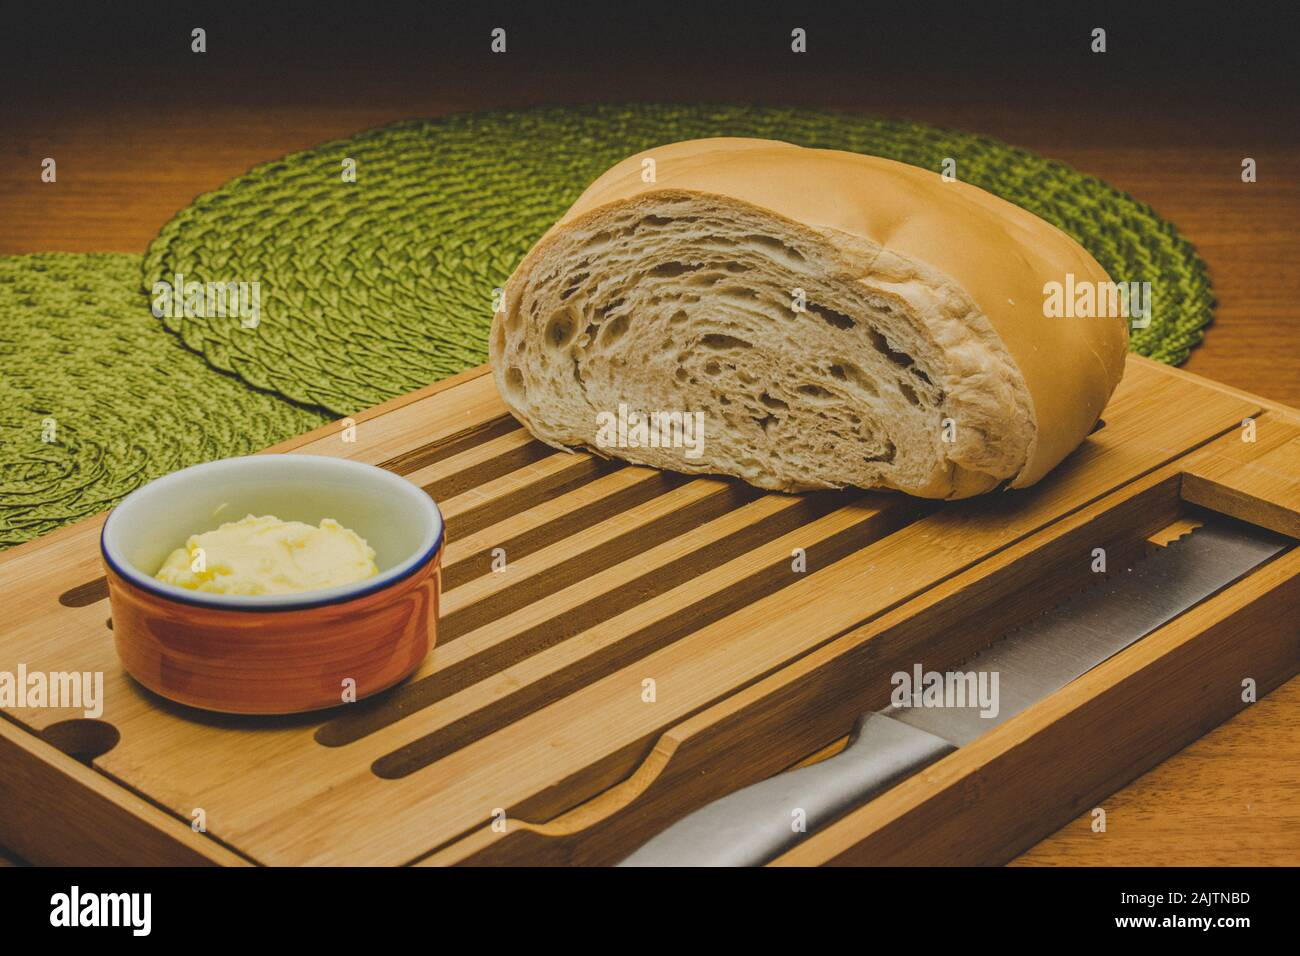 Cutted big bread at the table with knife and butter and placemats Stock Photo